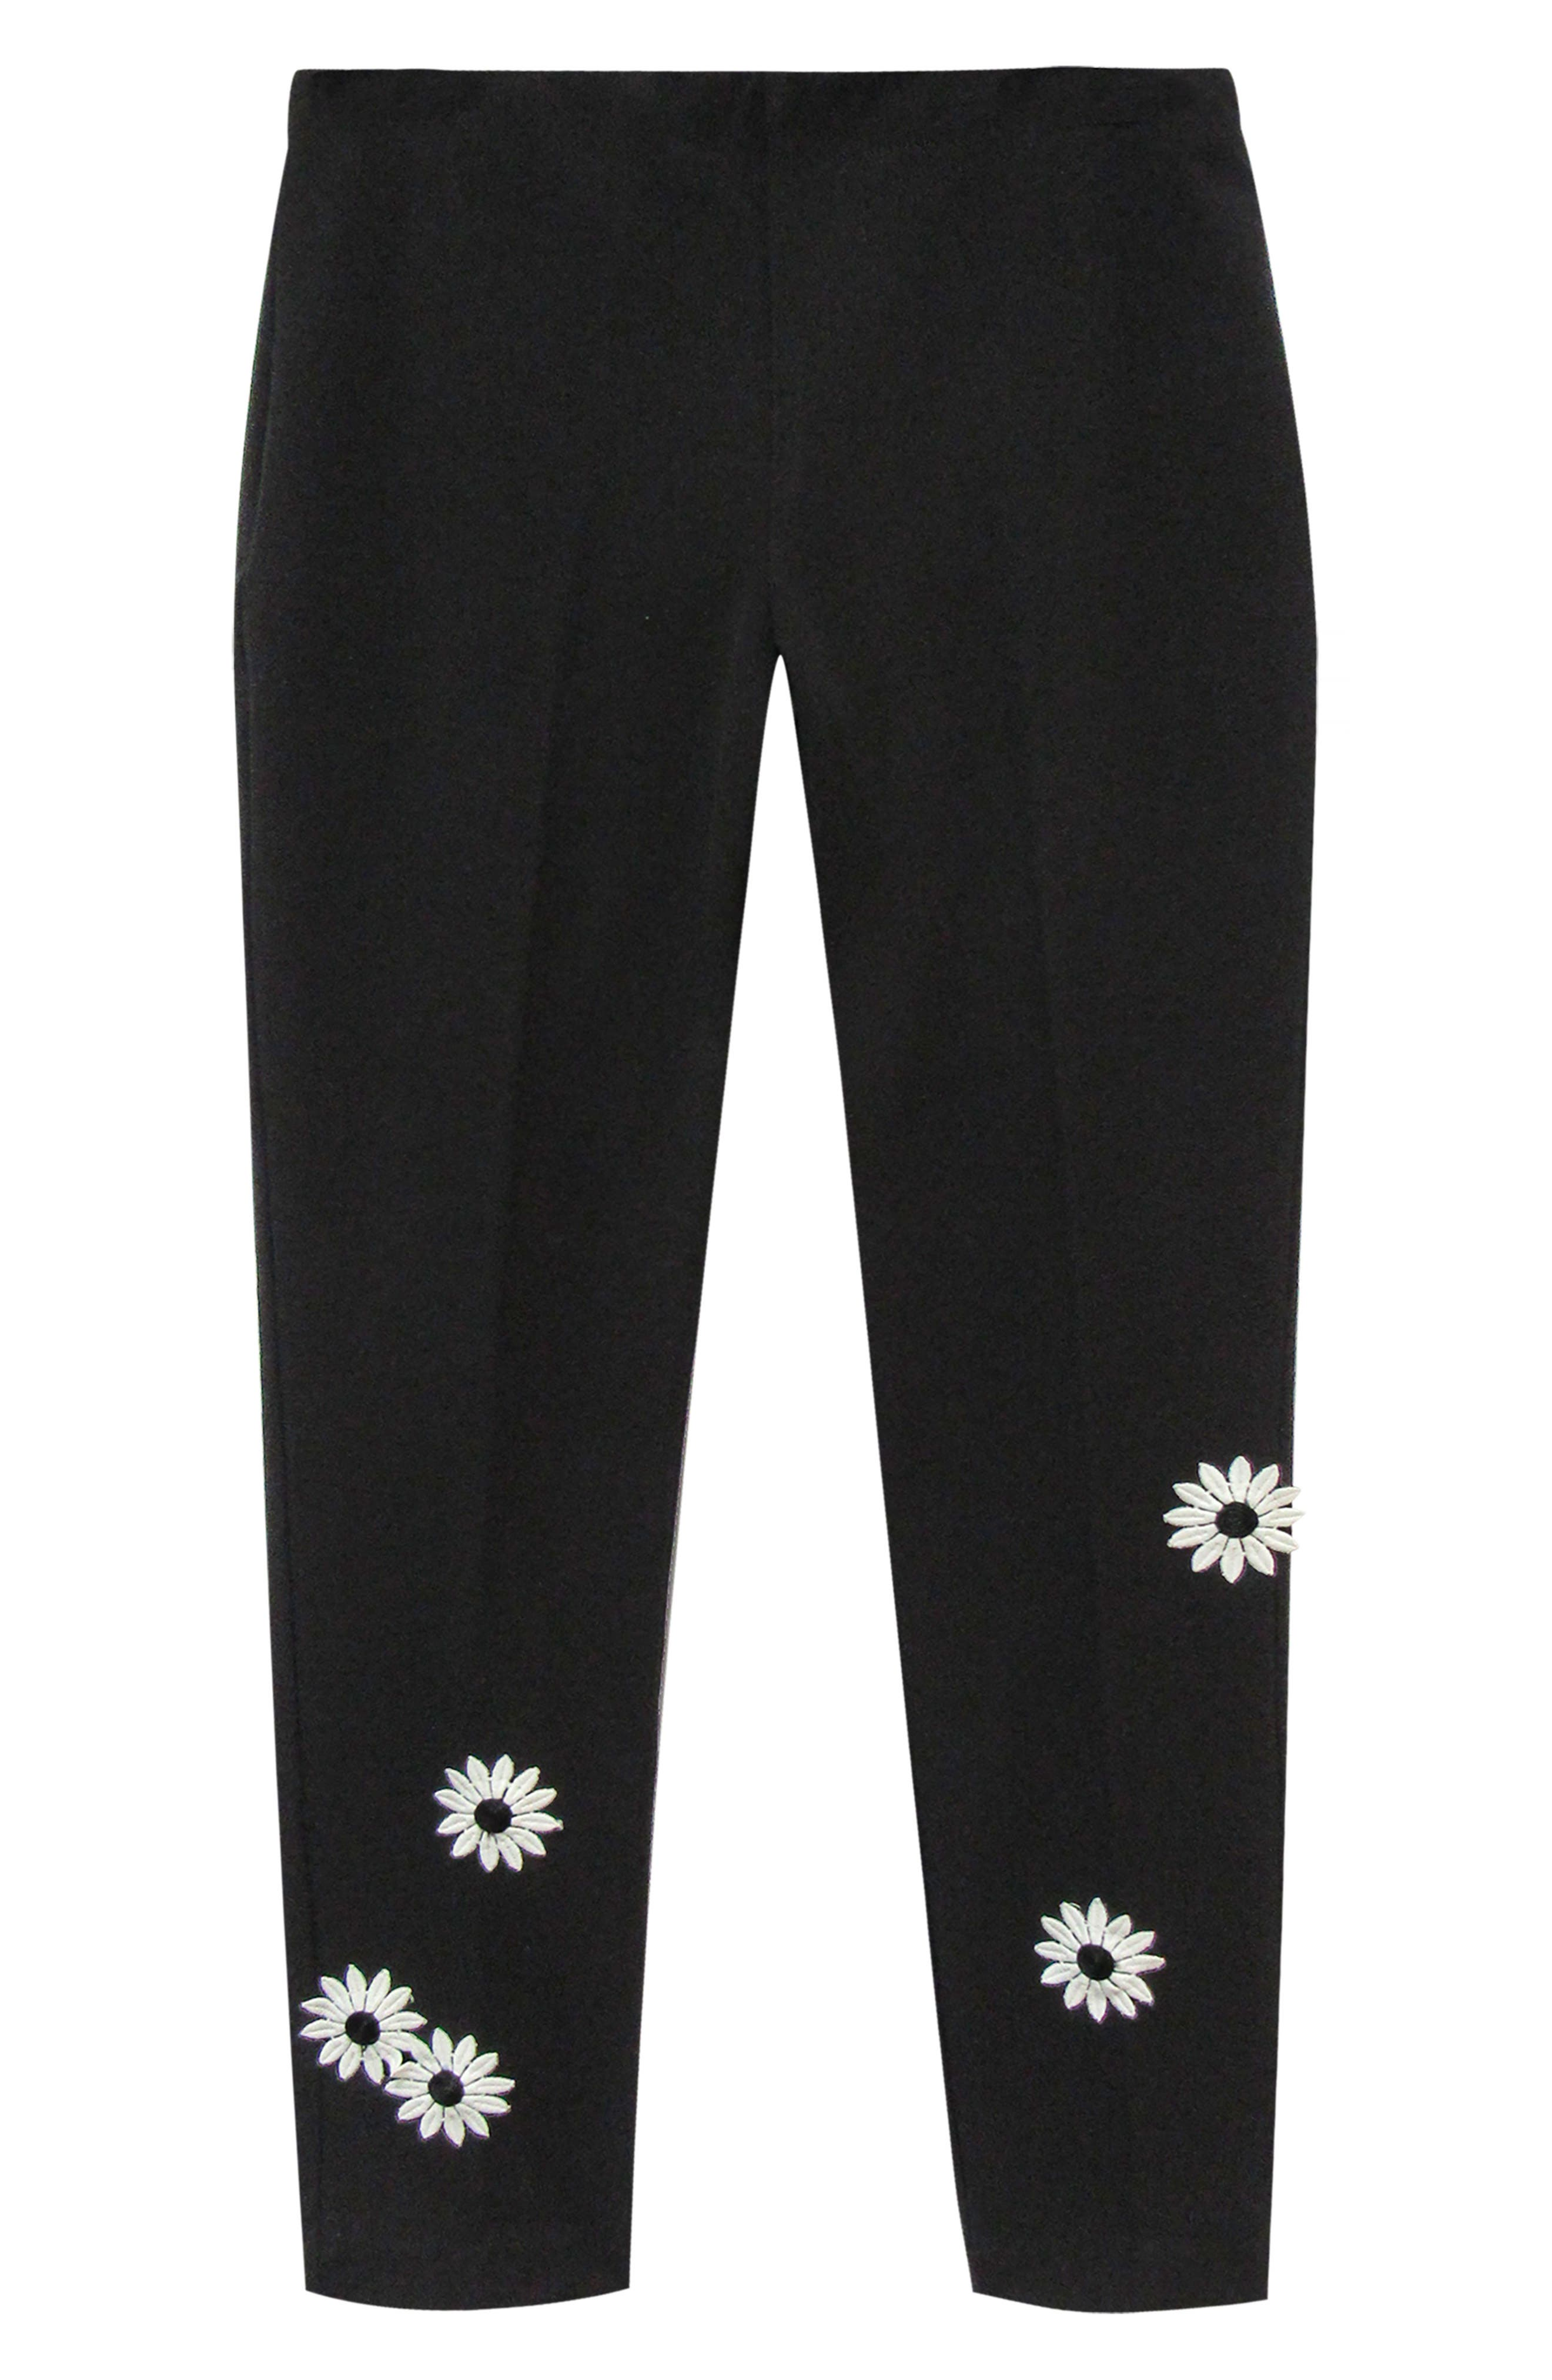 KAREN KANE, Piper Daisy Ankle Pants, Alternate thumbnail 3, color, BLACK